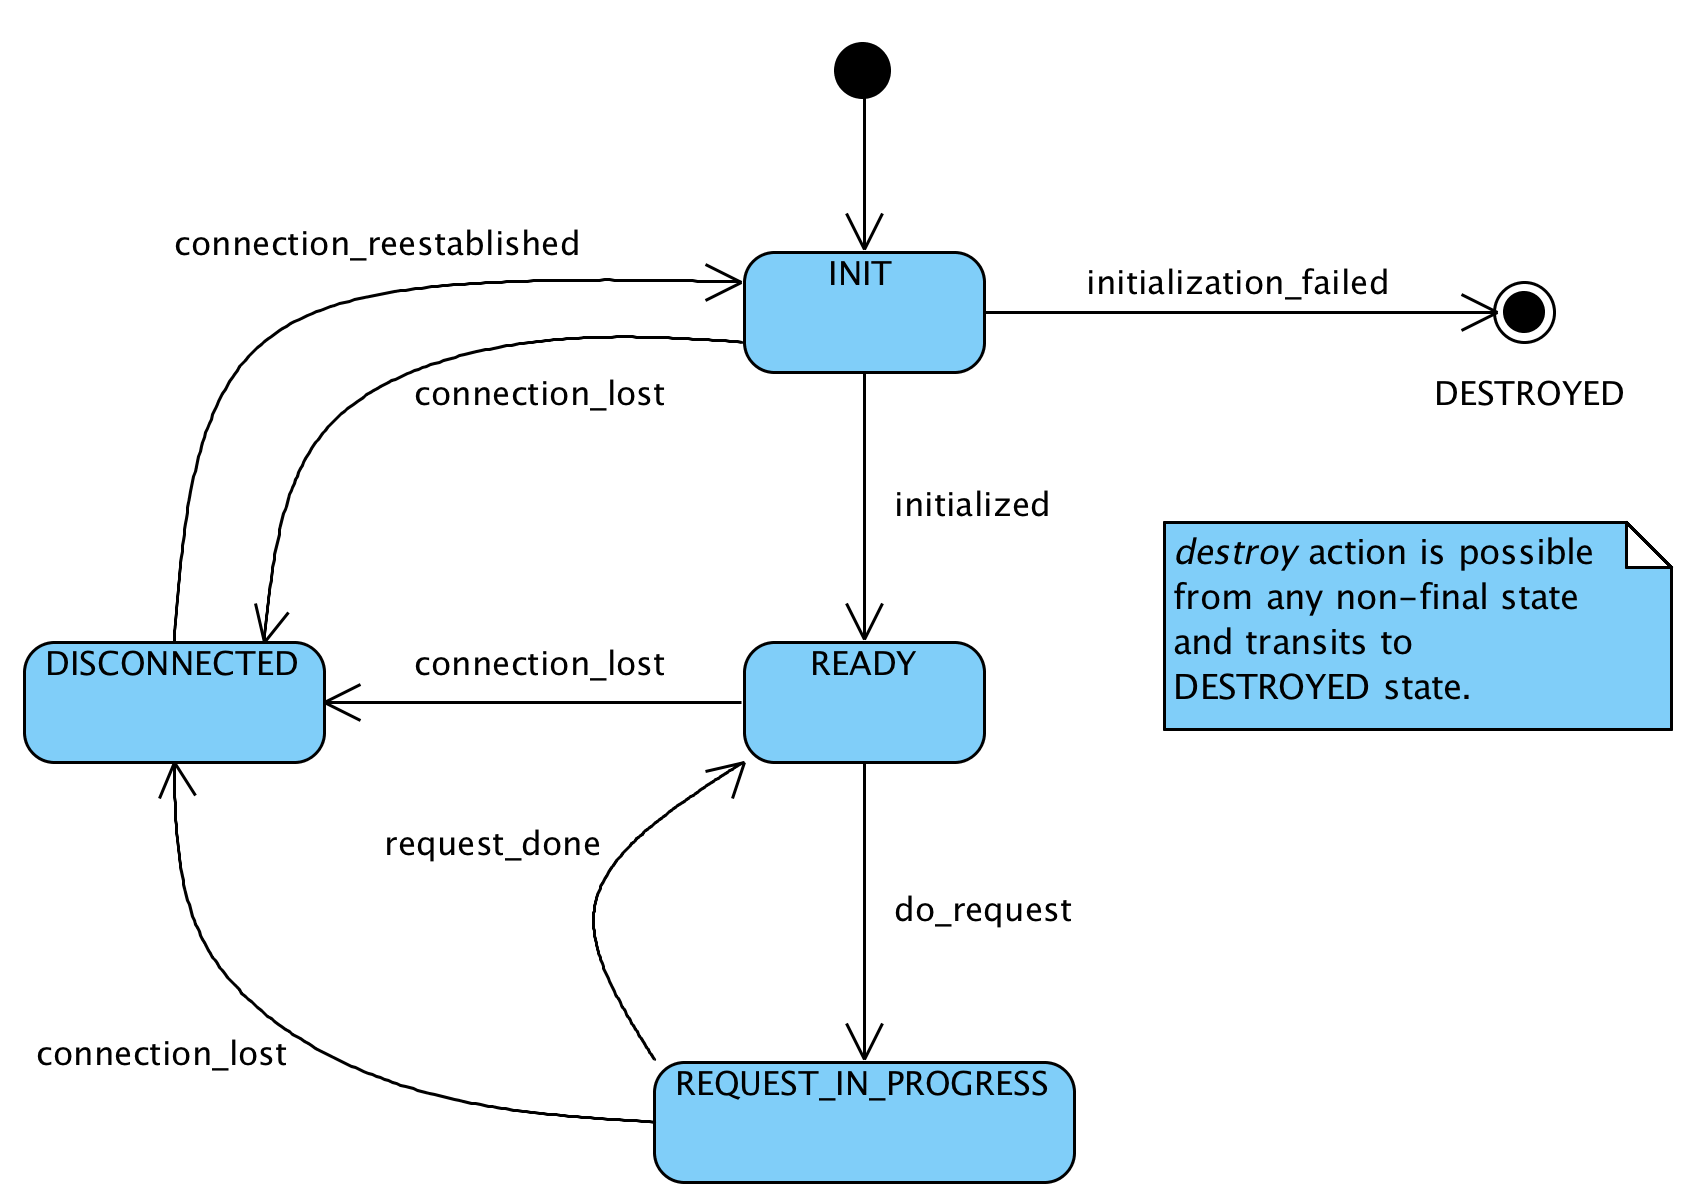 where are the intermediates and transition states in this diagram dc cdi ignition wiring pvaccess protocol specification